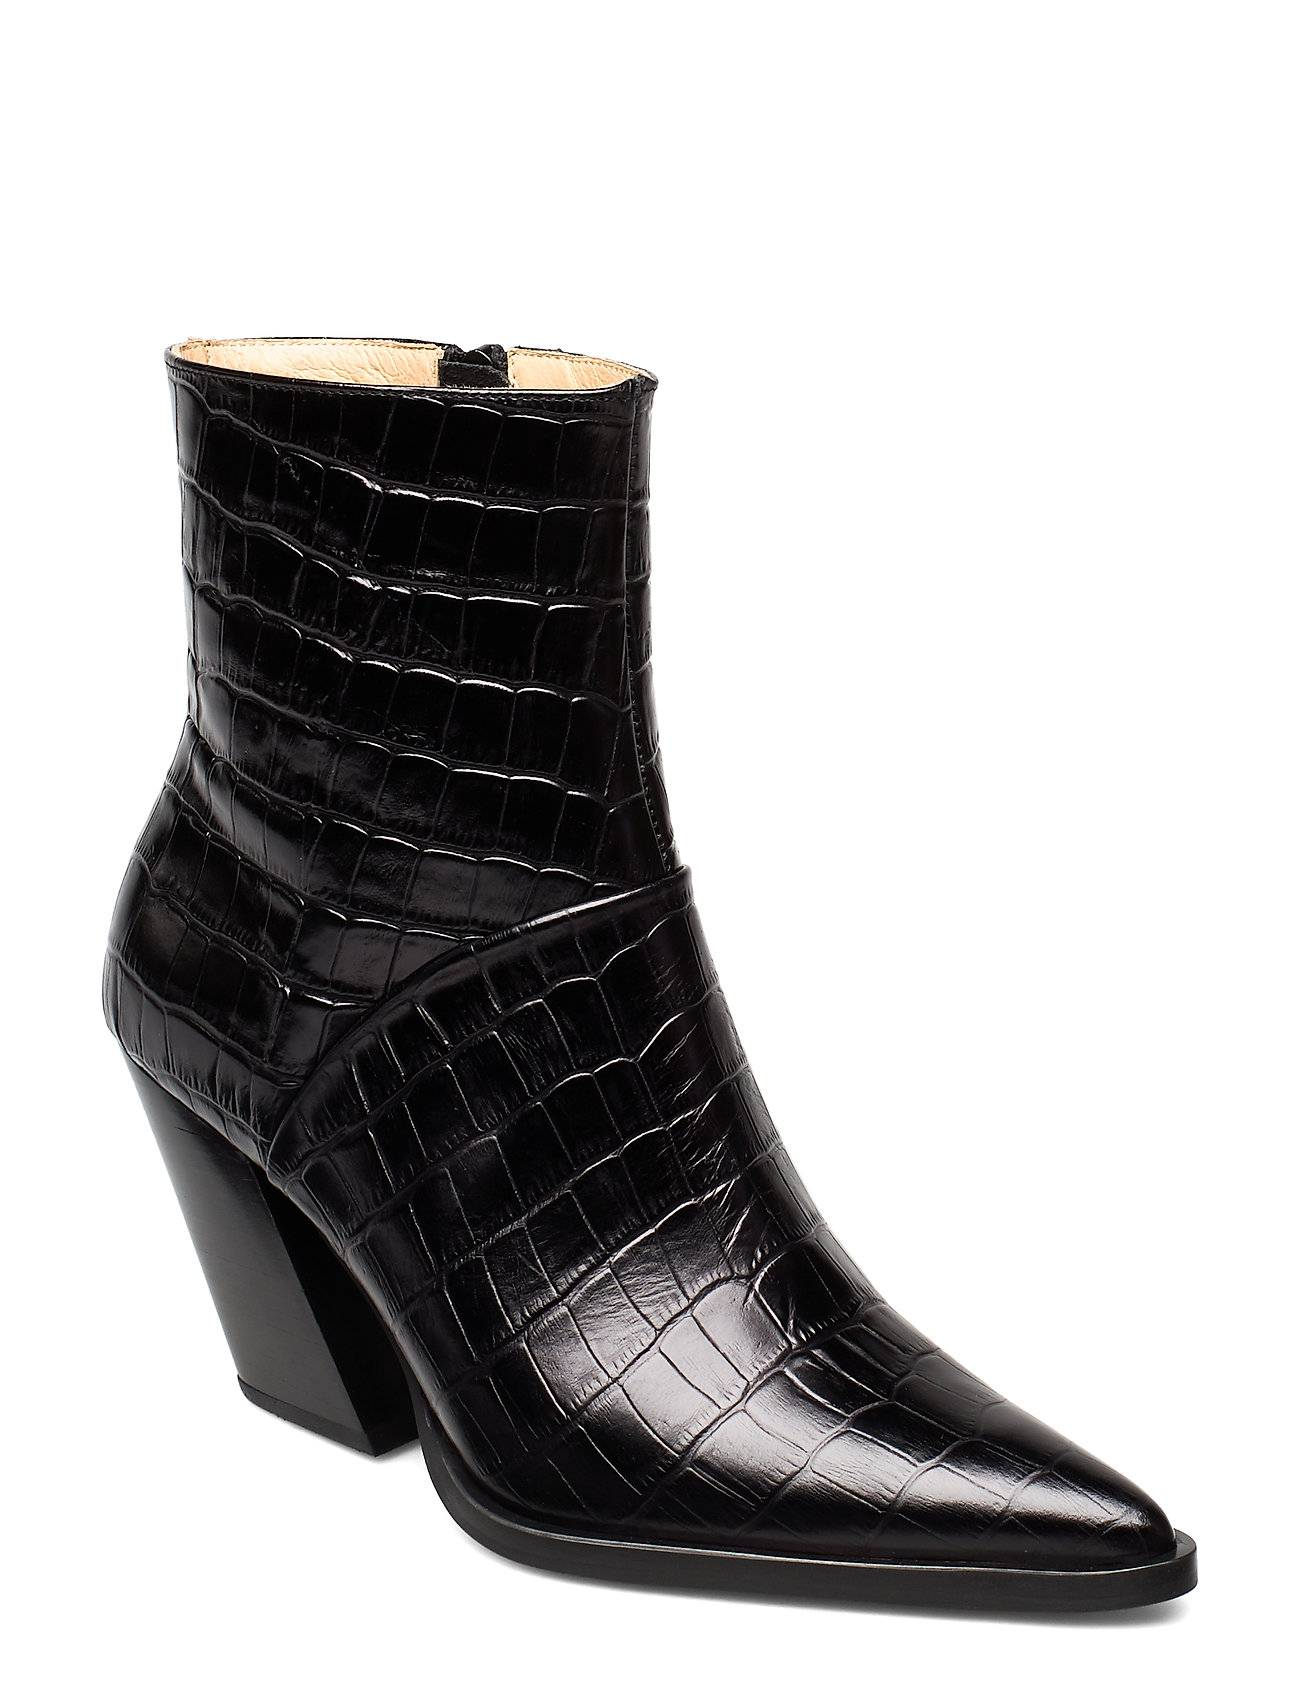 ANNY NORD Escape From The West Ankle Boot Shoes Boots Ankle Boots Ankle Boots With Heel Musta